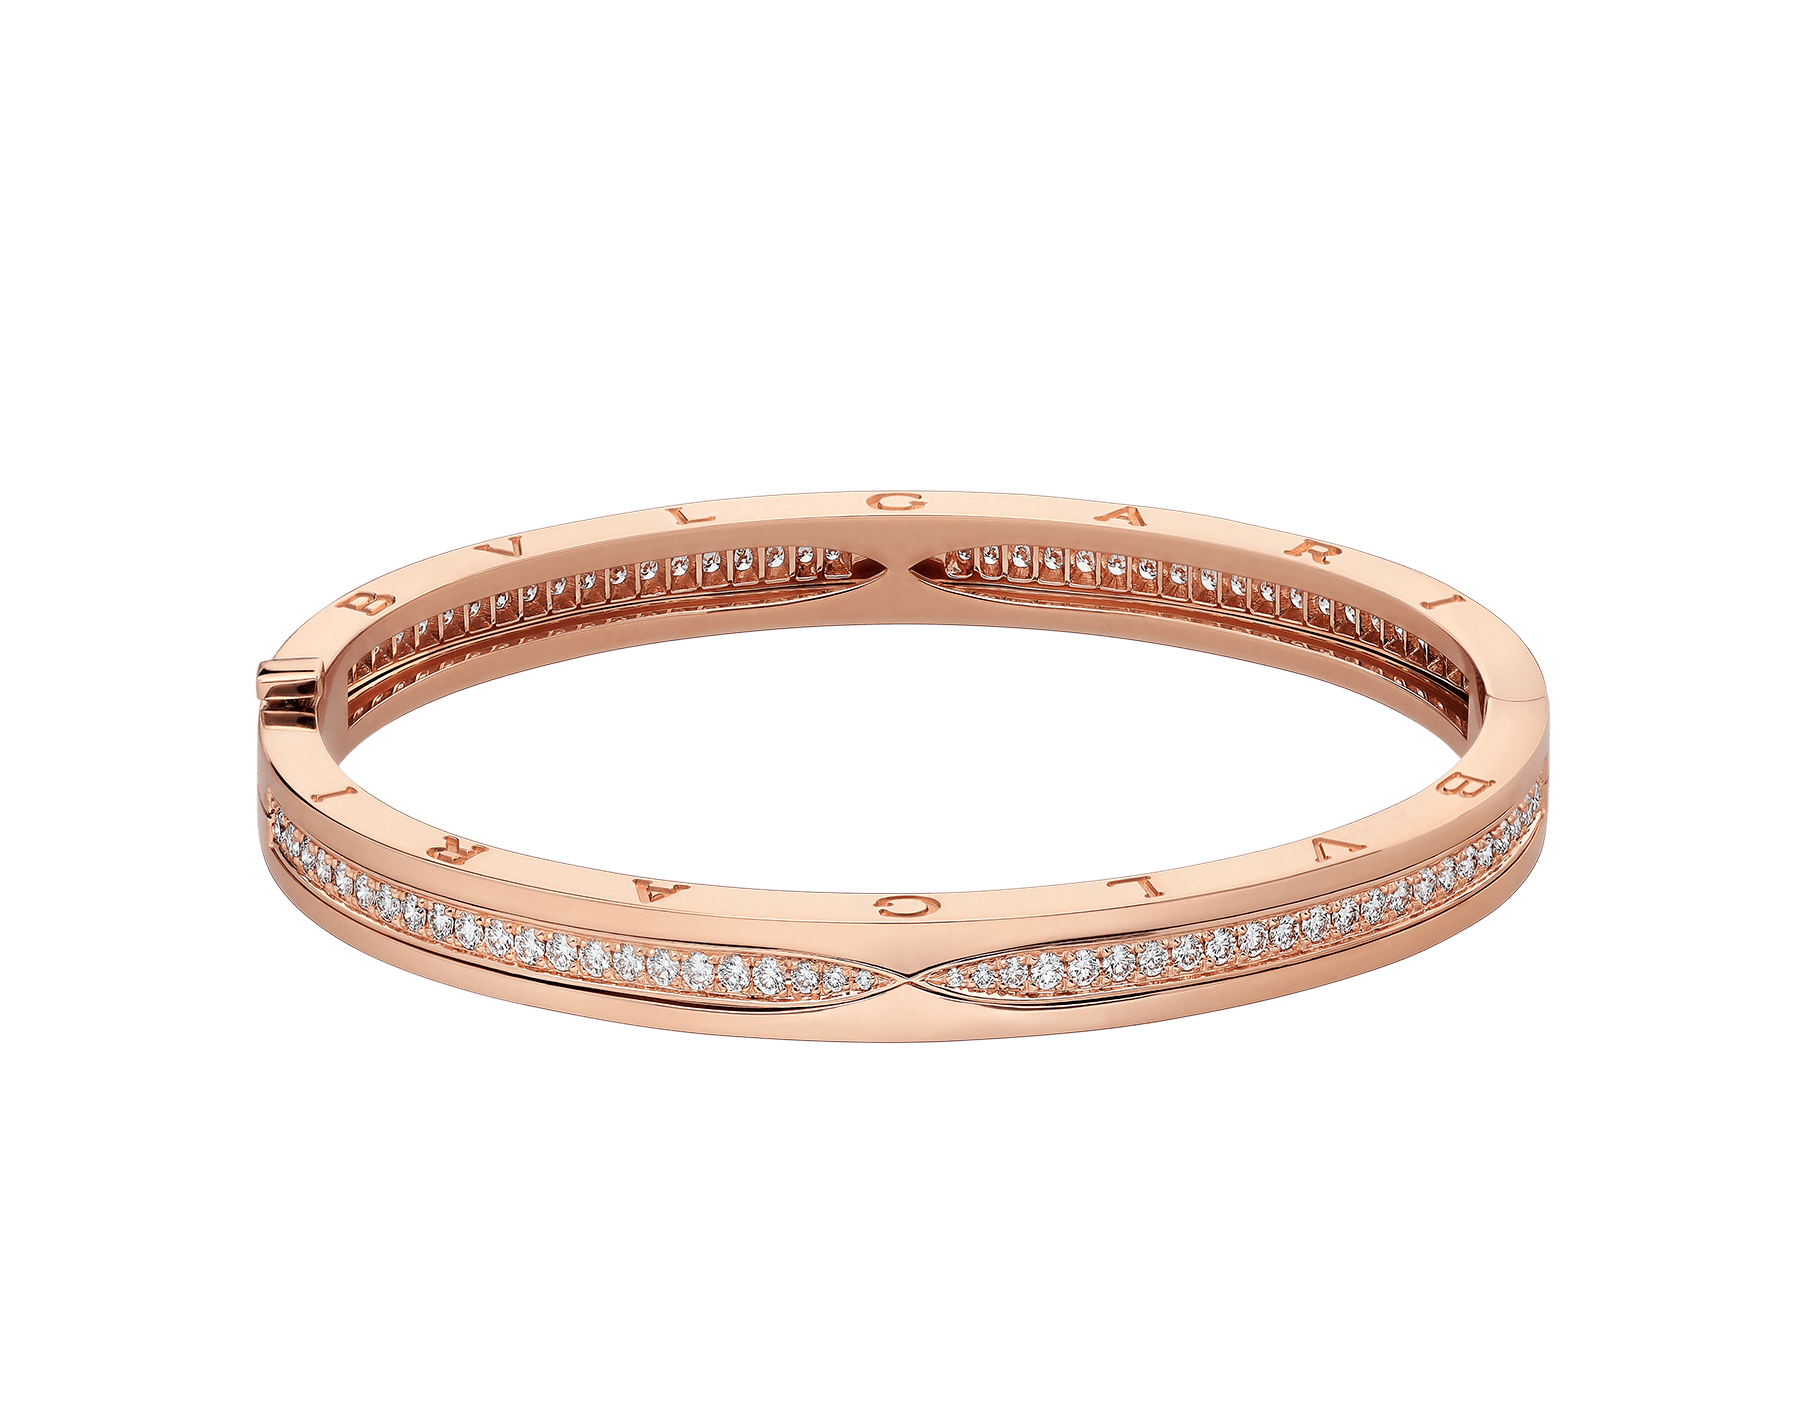 B.zero1 bangle bracelet in 18 kt rose gold, set with pavé diamonds on the spiral. BR857372 image 2